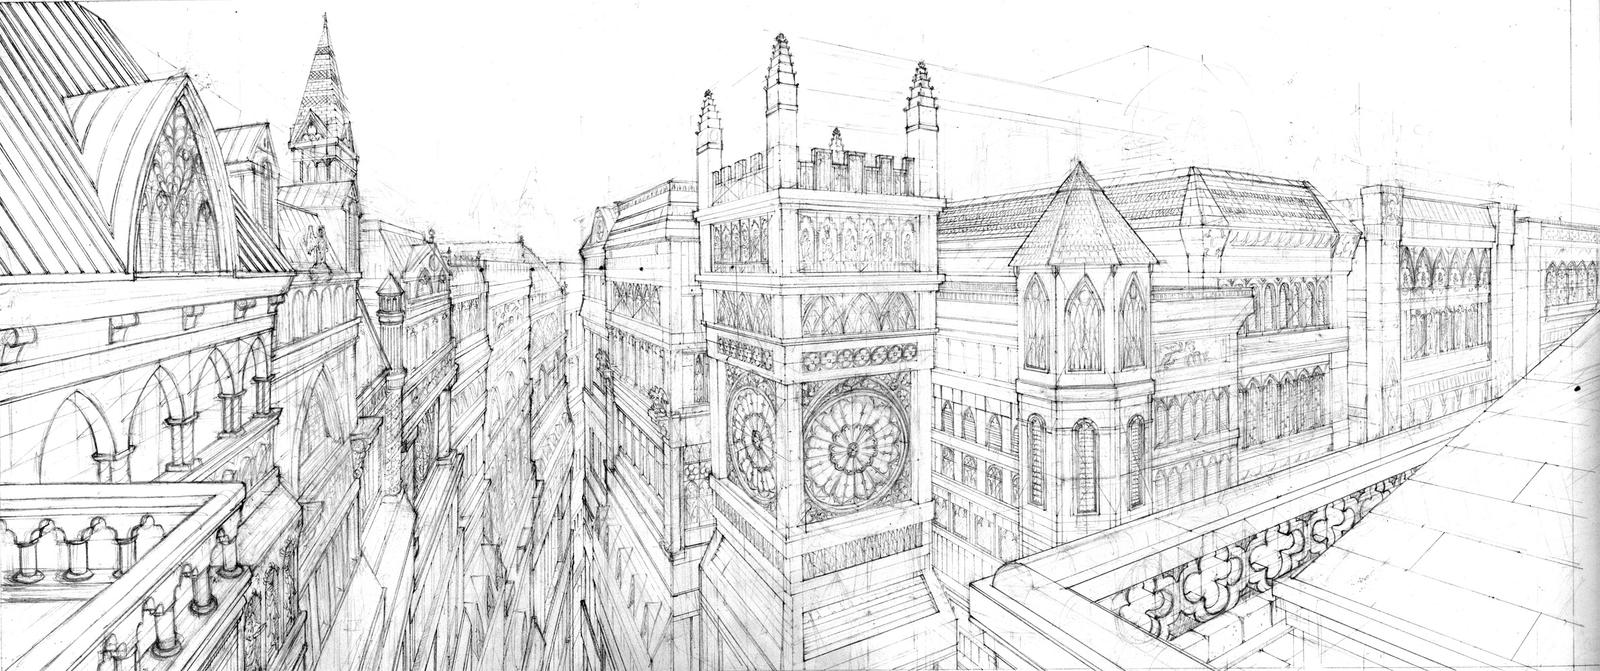 Gothic architecture by artbygiuseppe on deviantart for Architecture drawing